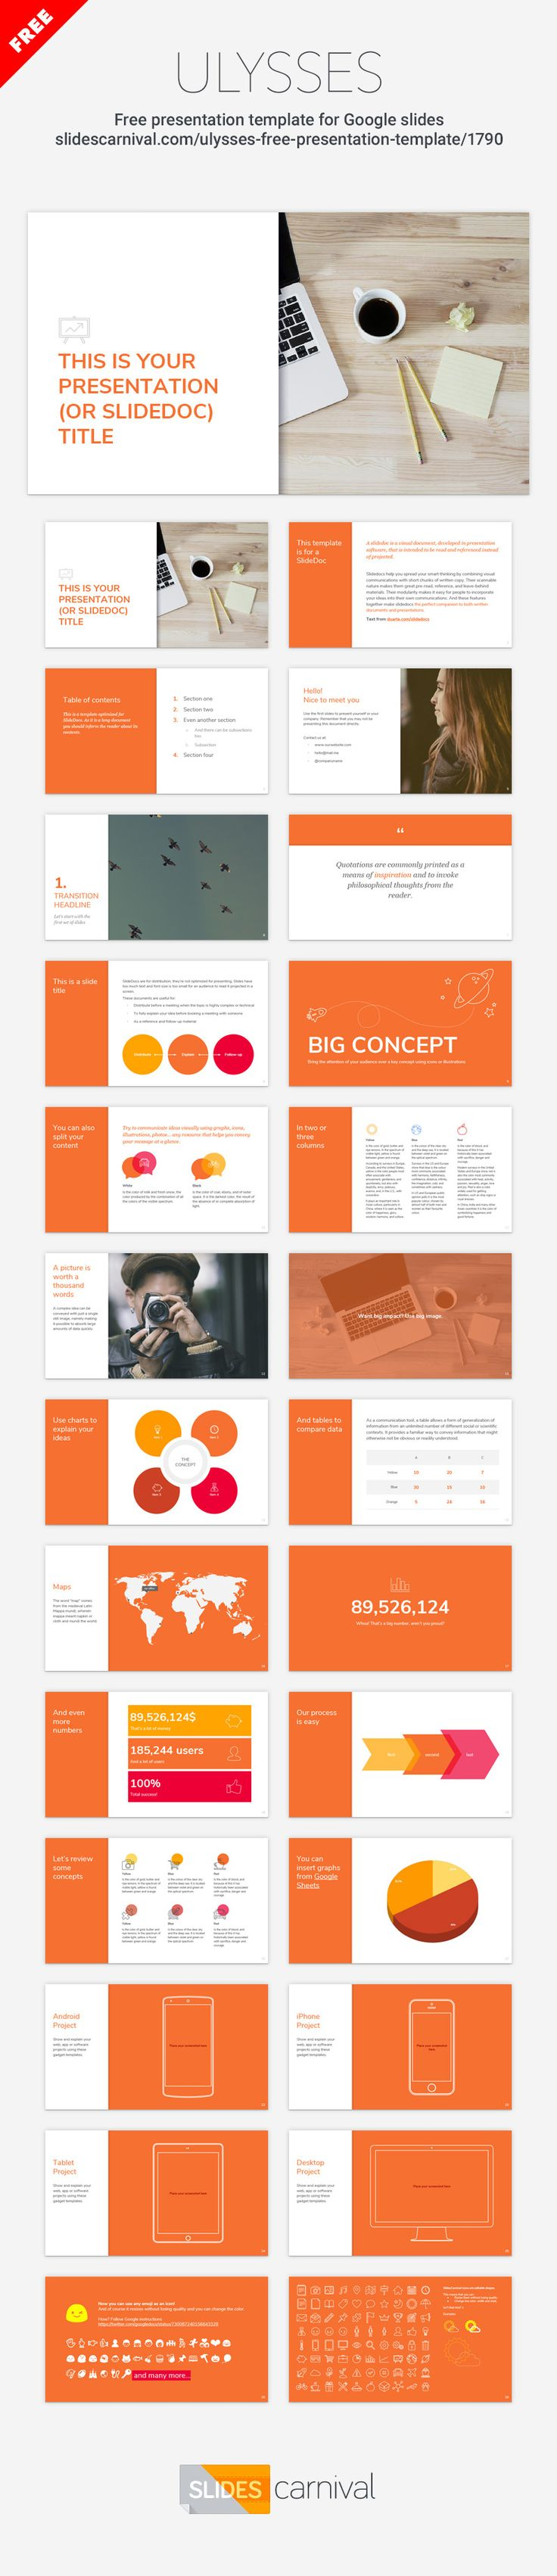 Best Free Presentation Templates Images On Pinterest - Professional templates